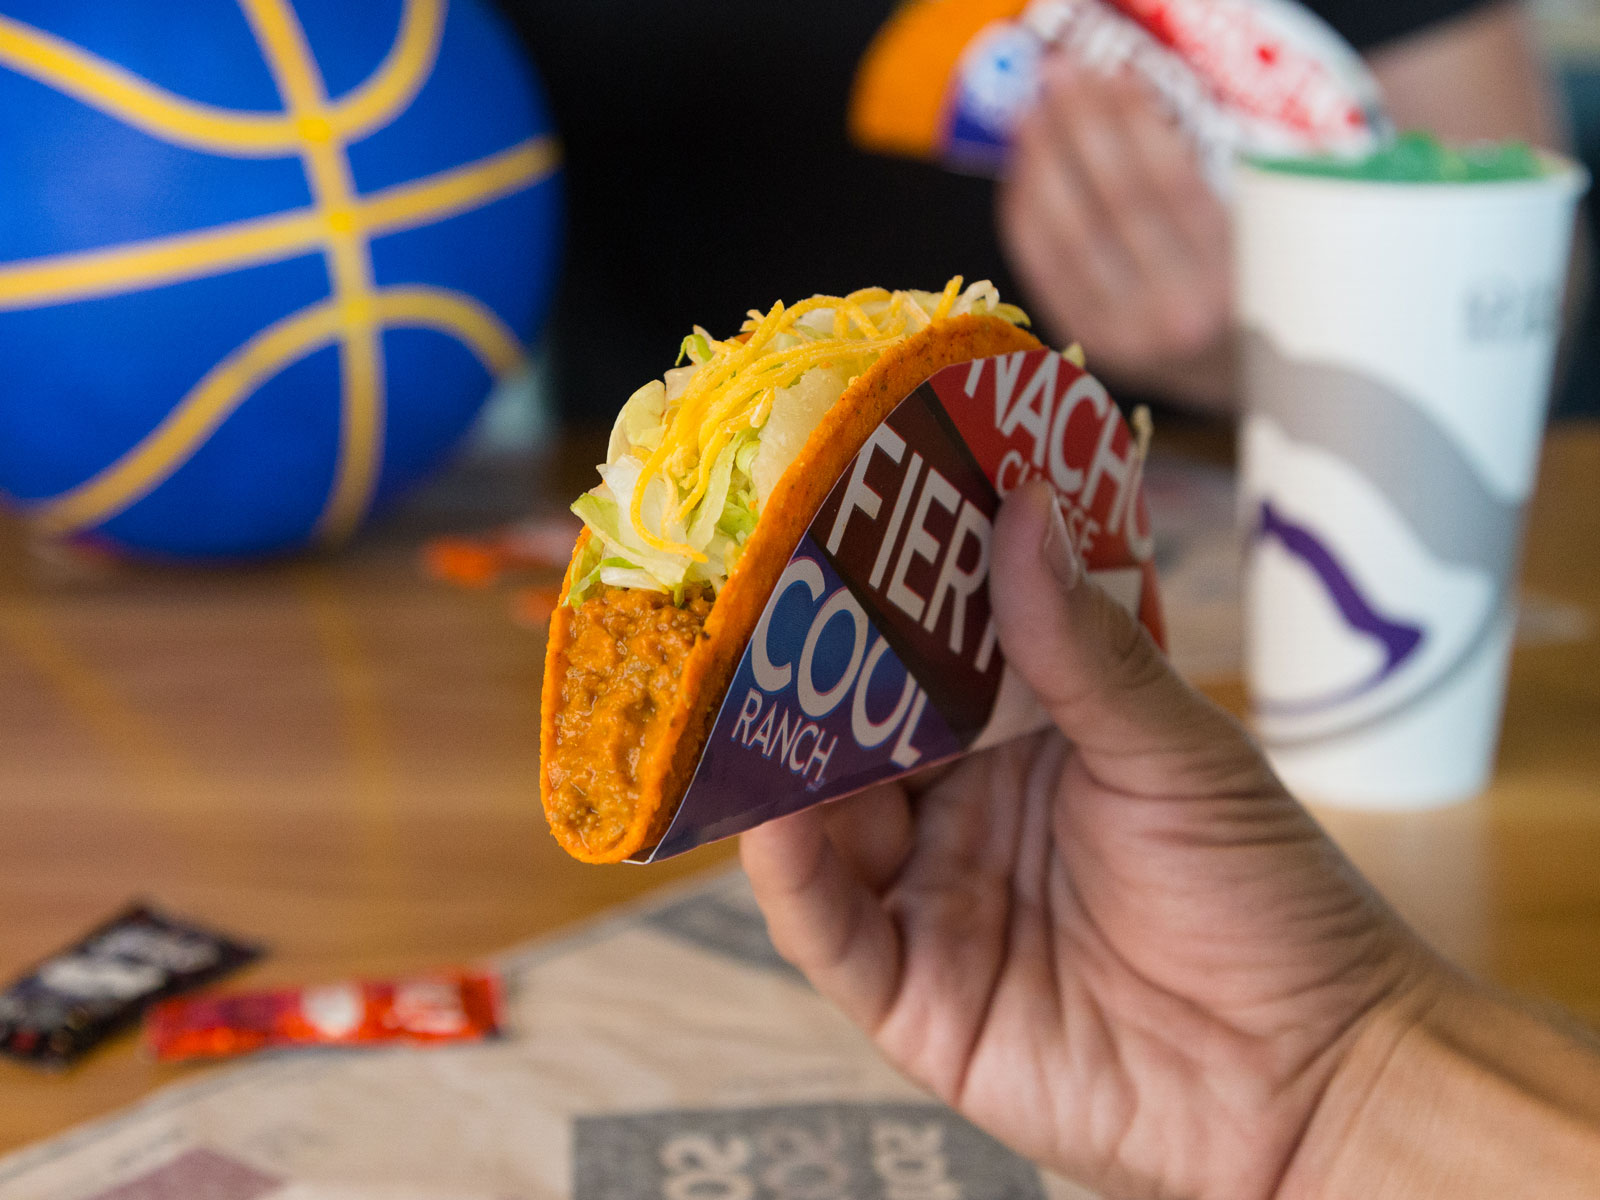 FREE TACO! Golden State Warriors win triggers Taco Bell giveaway